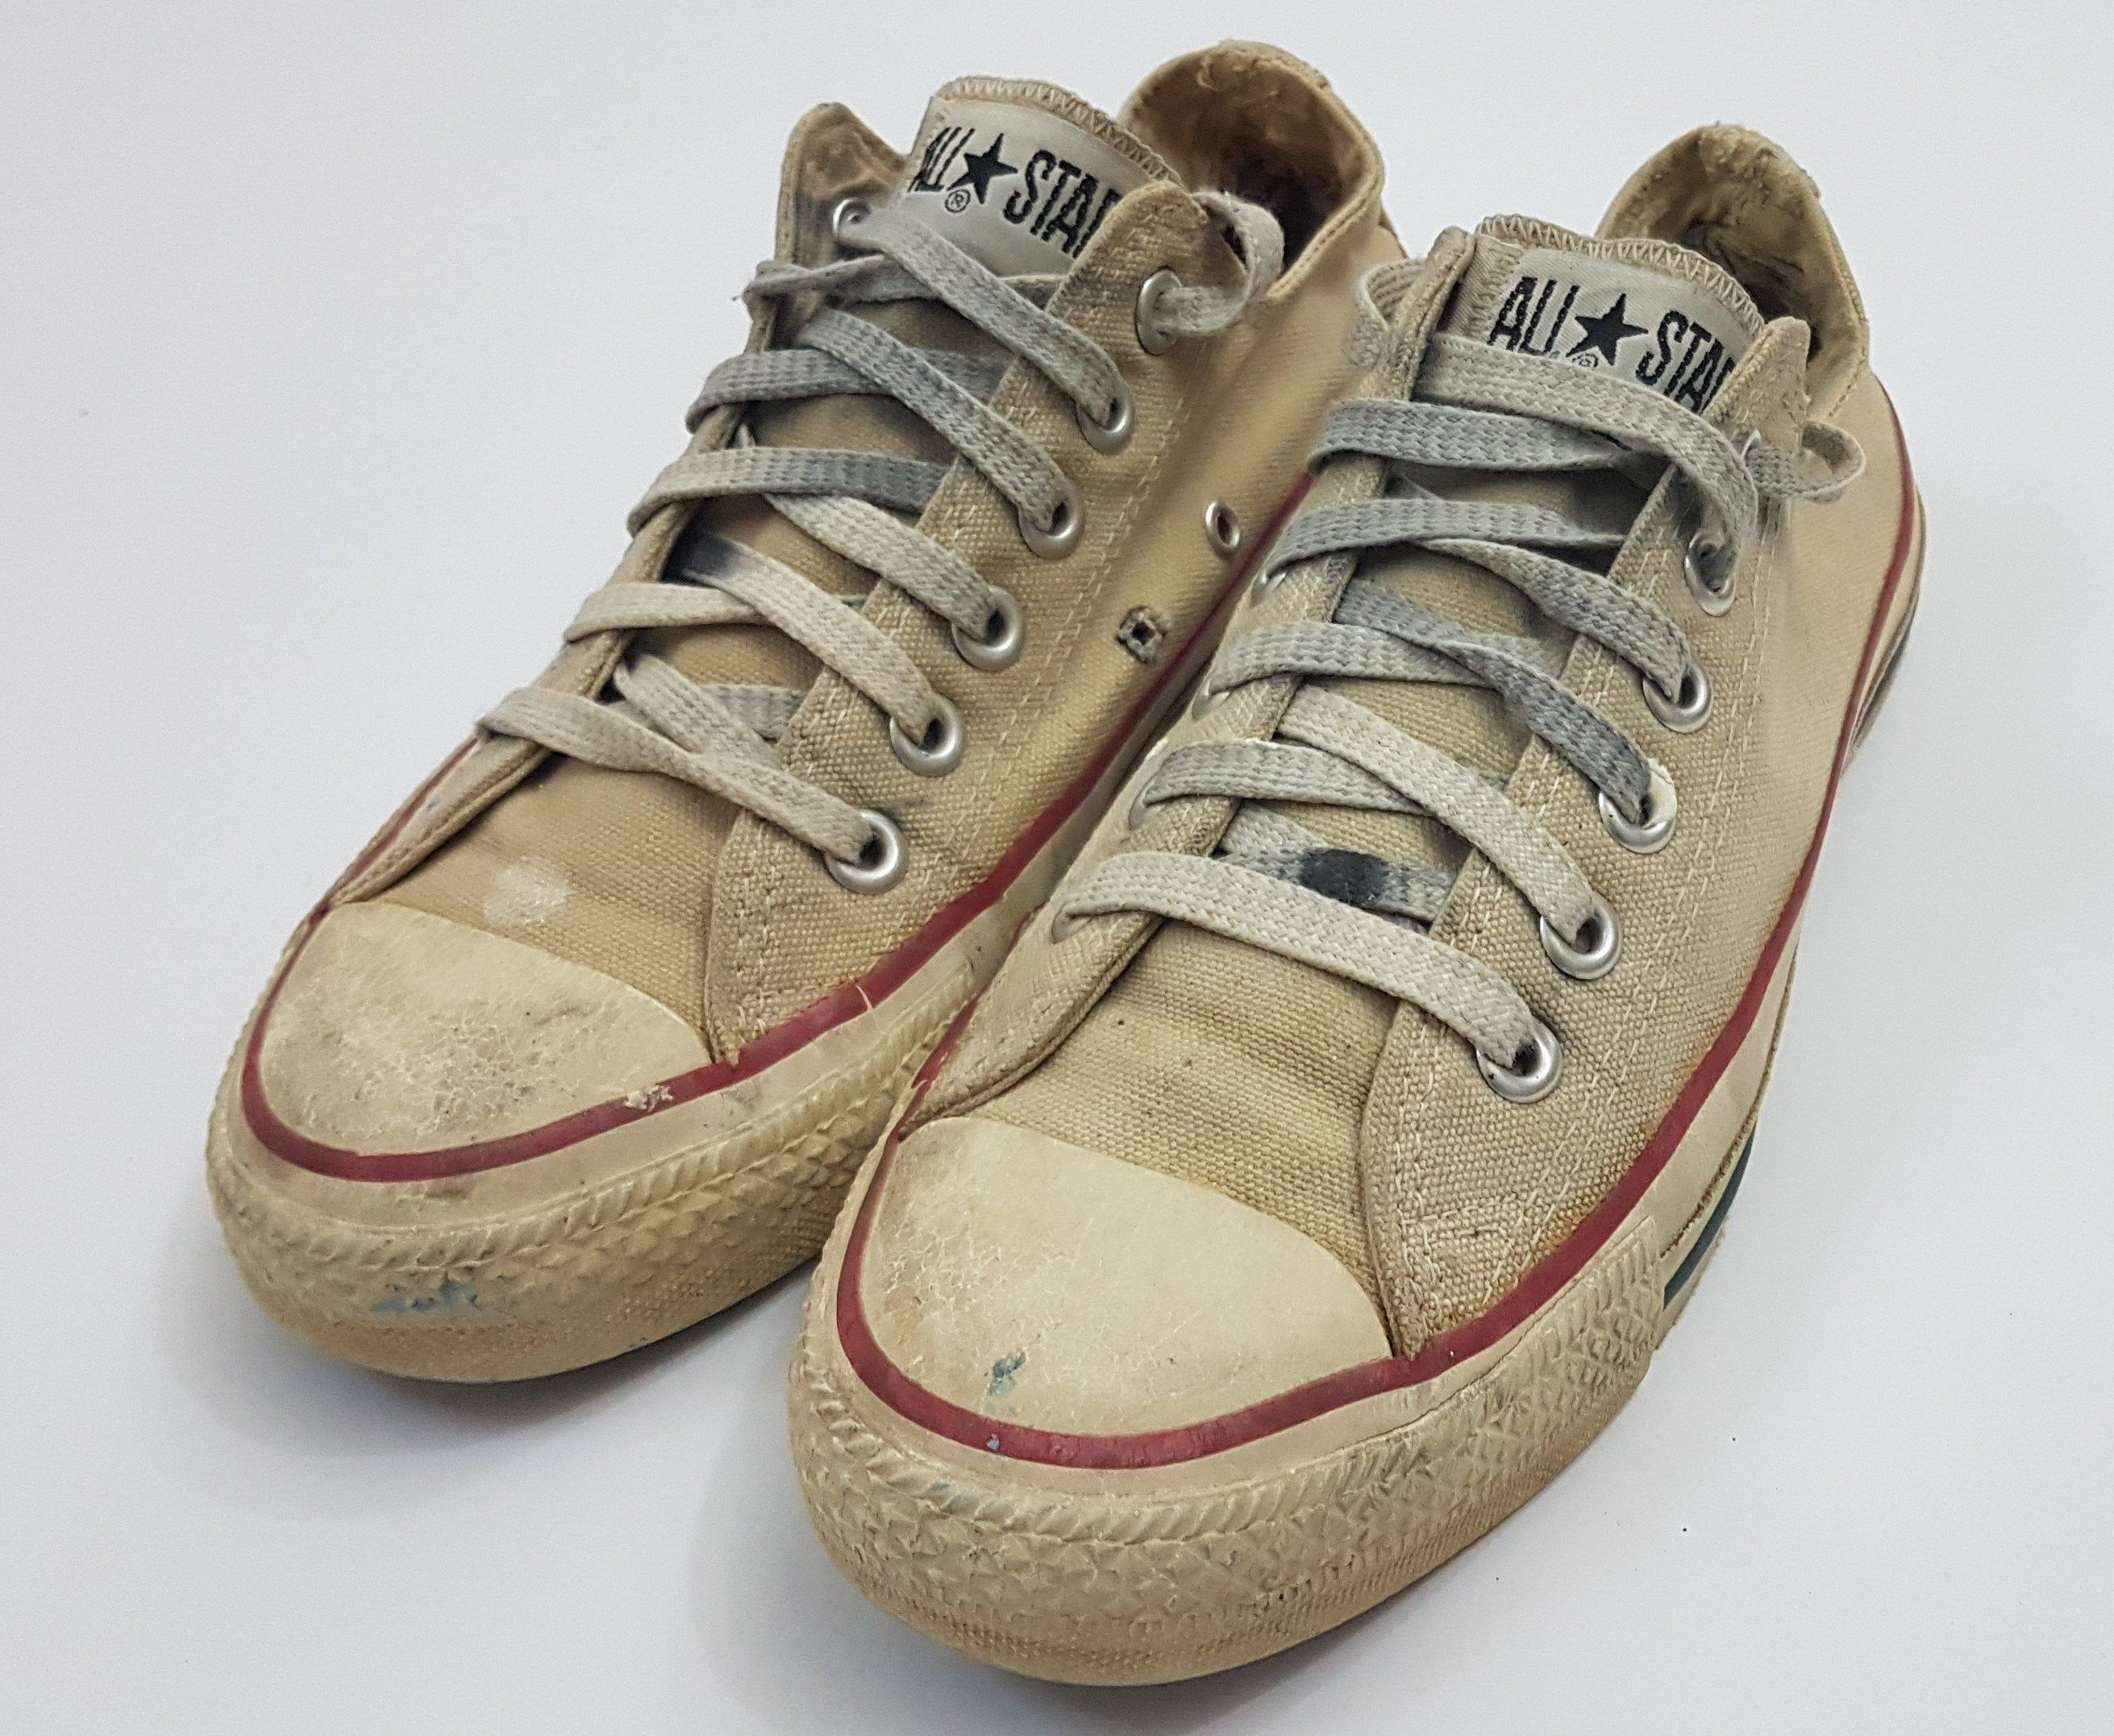 Vintage 90s converse All Star shoes Sneakers Chuck Taylor